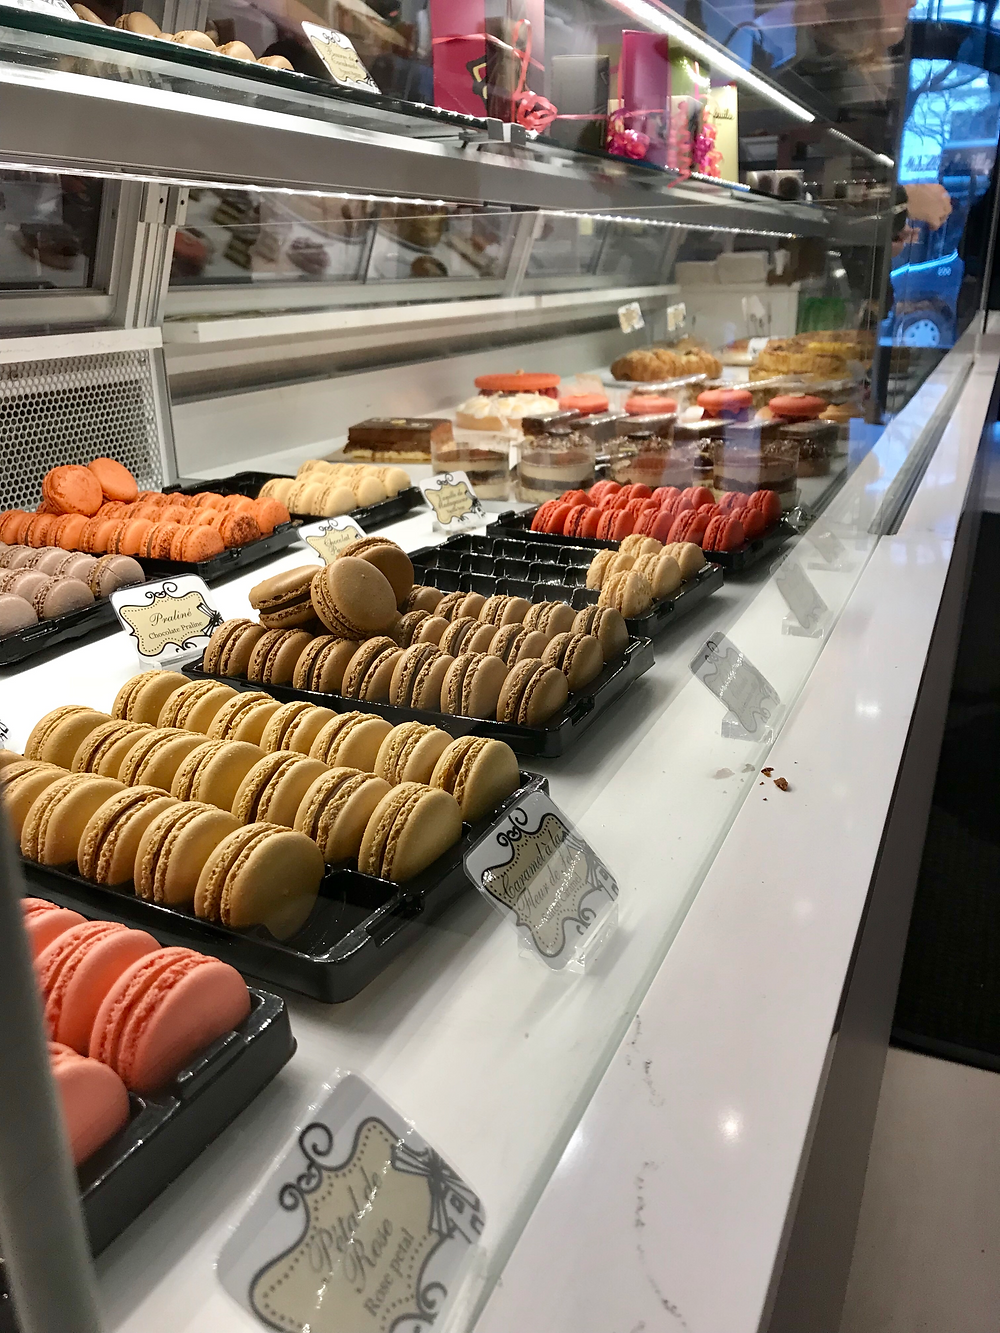 A French breakfast was on the daily while in New York. This little pretty little place (Maison Kayser) kept me thankful for lots of walking after a visit.